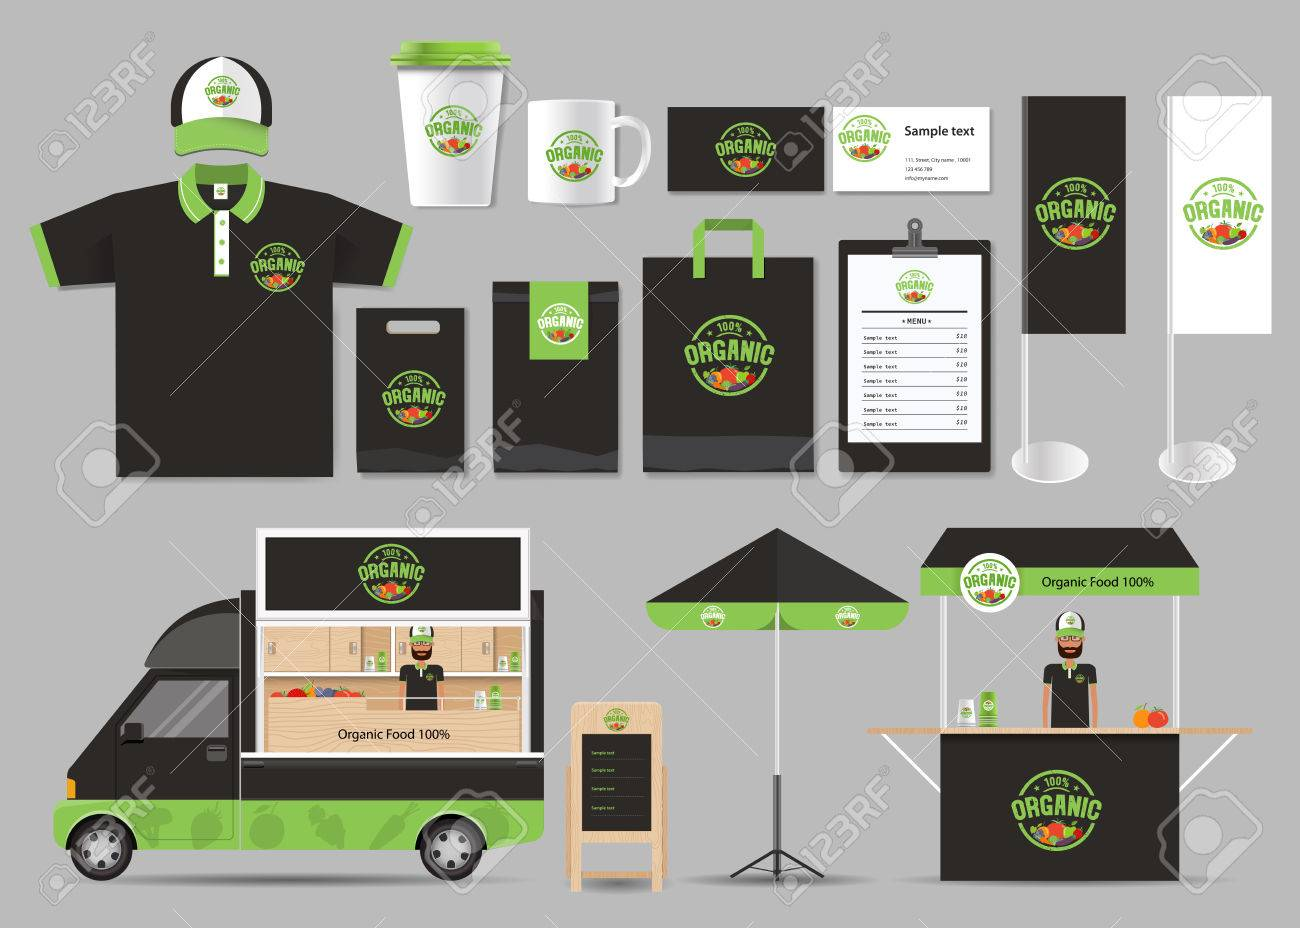 organic food branding mock up template with design corporate